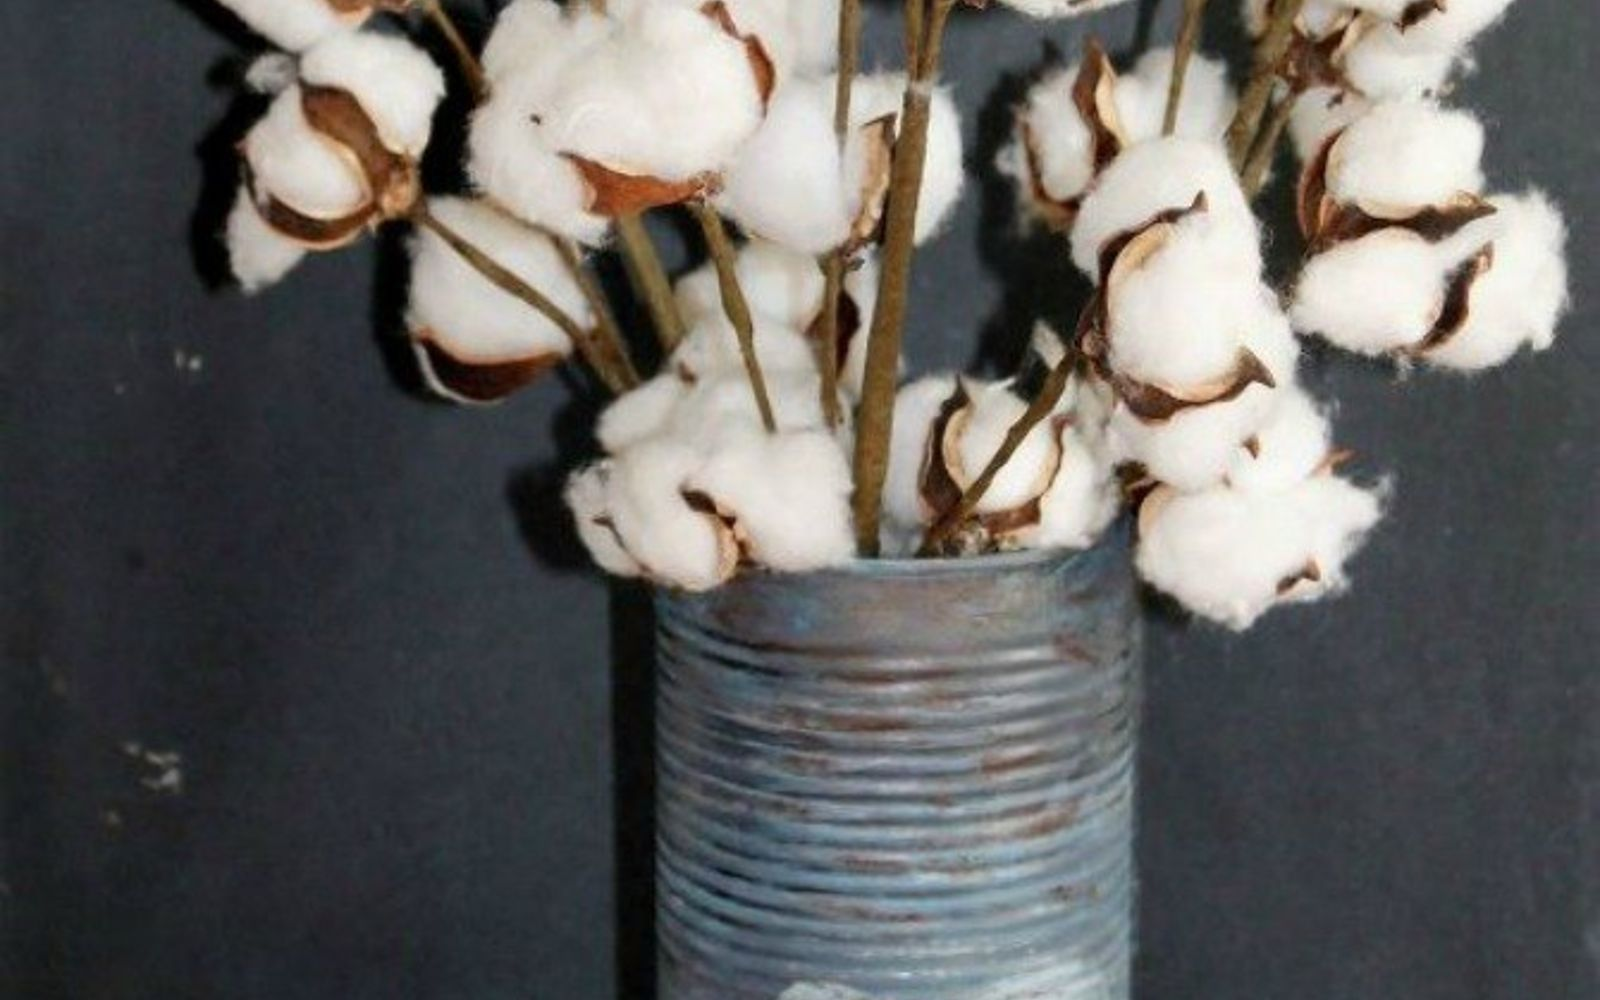 s 20 ways to get a fixer upper makeover without being on the show, home decor, painted furniture, rustic furniture, Stack cans into a rustic vase for free